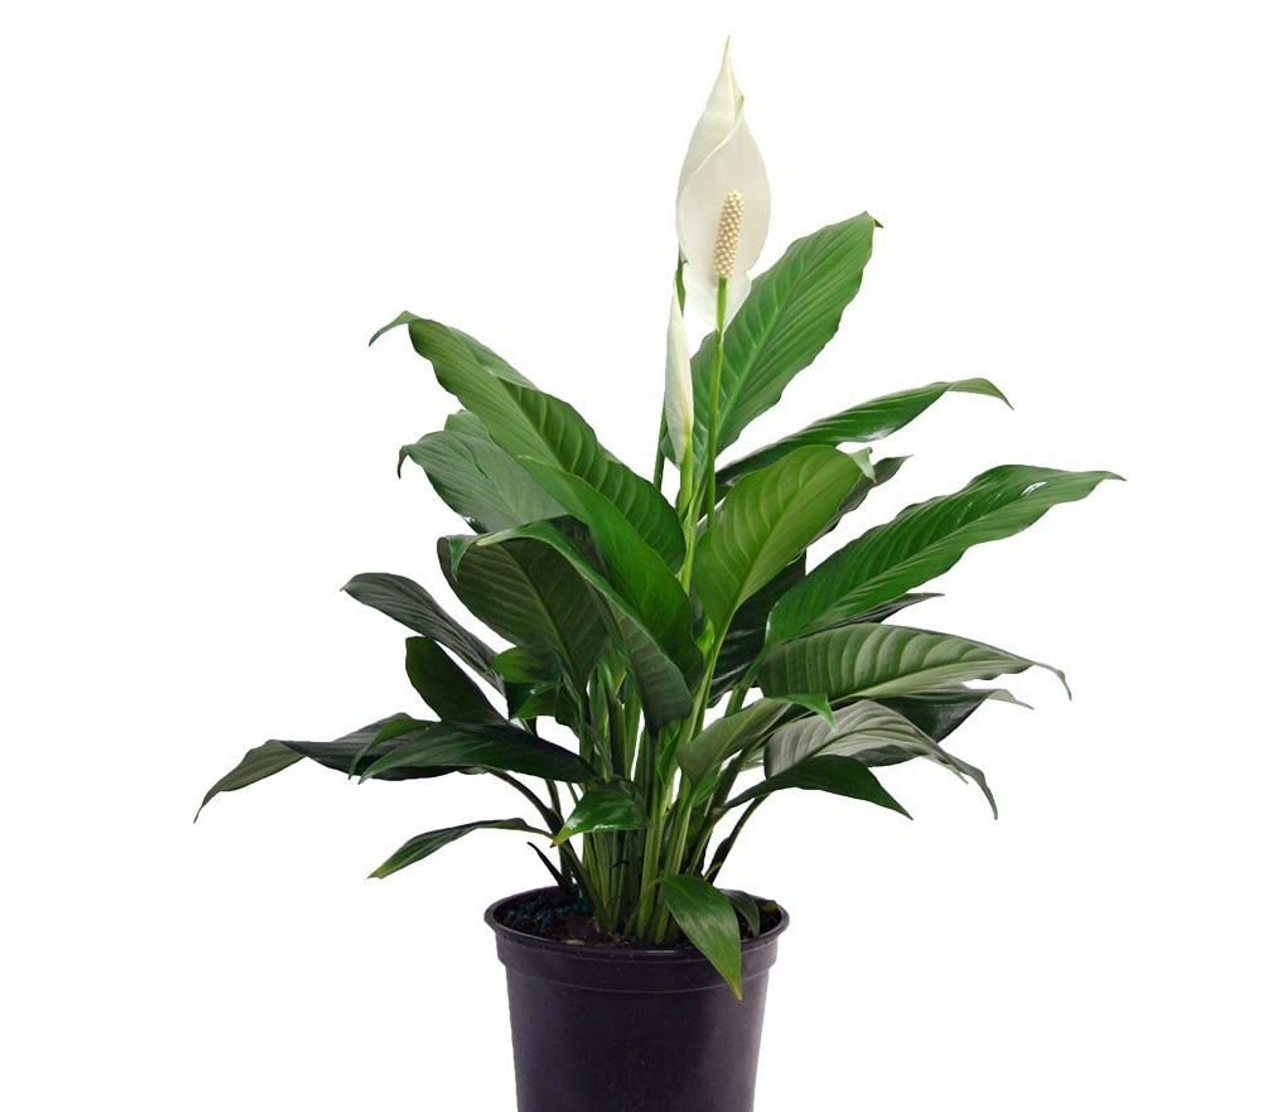 Peace lilies are indisputably terrific as houseplants. Small varieties look attractive on a tabletop and bigger ones can occupy a nice-sized spot on the floor. They filter more indoor pollutants than most other plants, so are great for bedrooms or other frequented rooms.